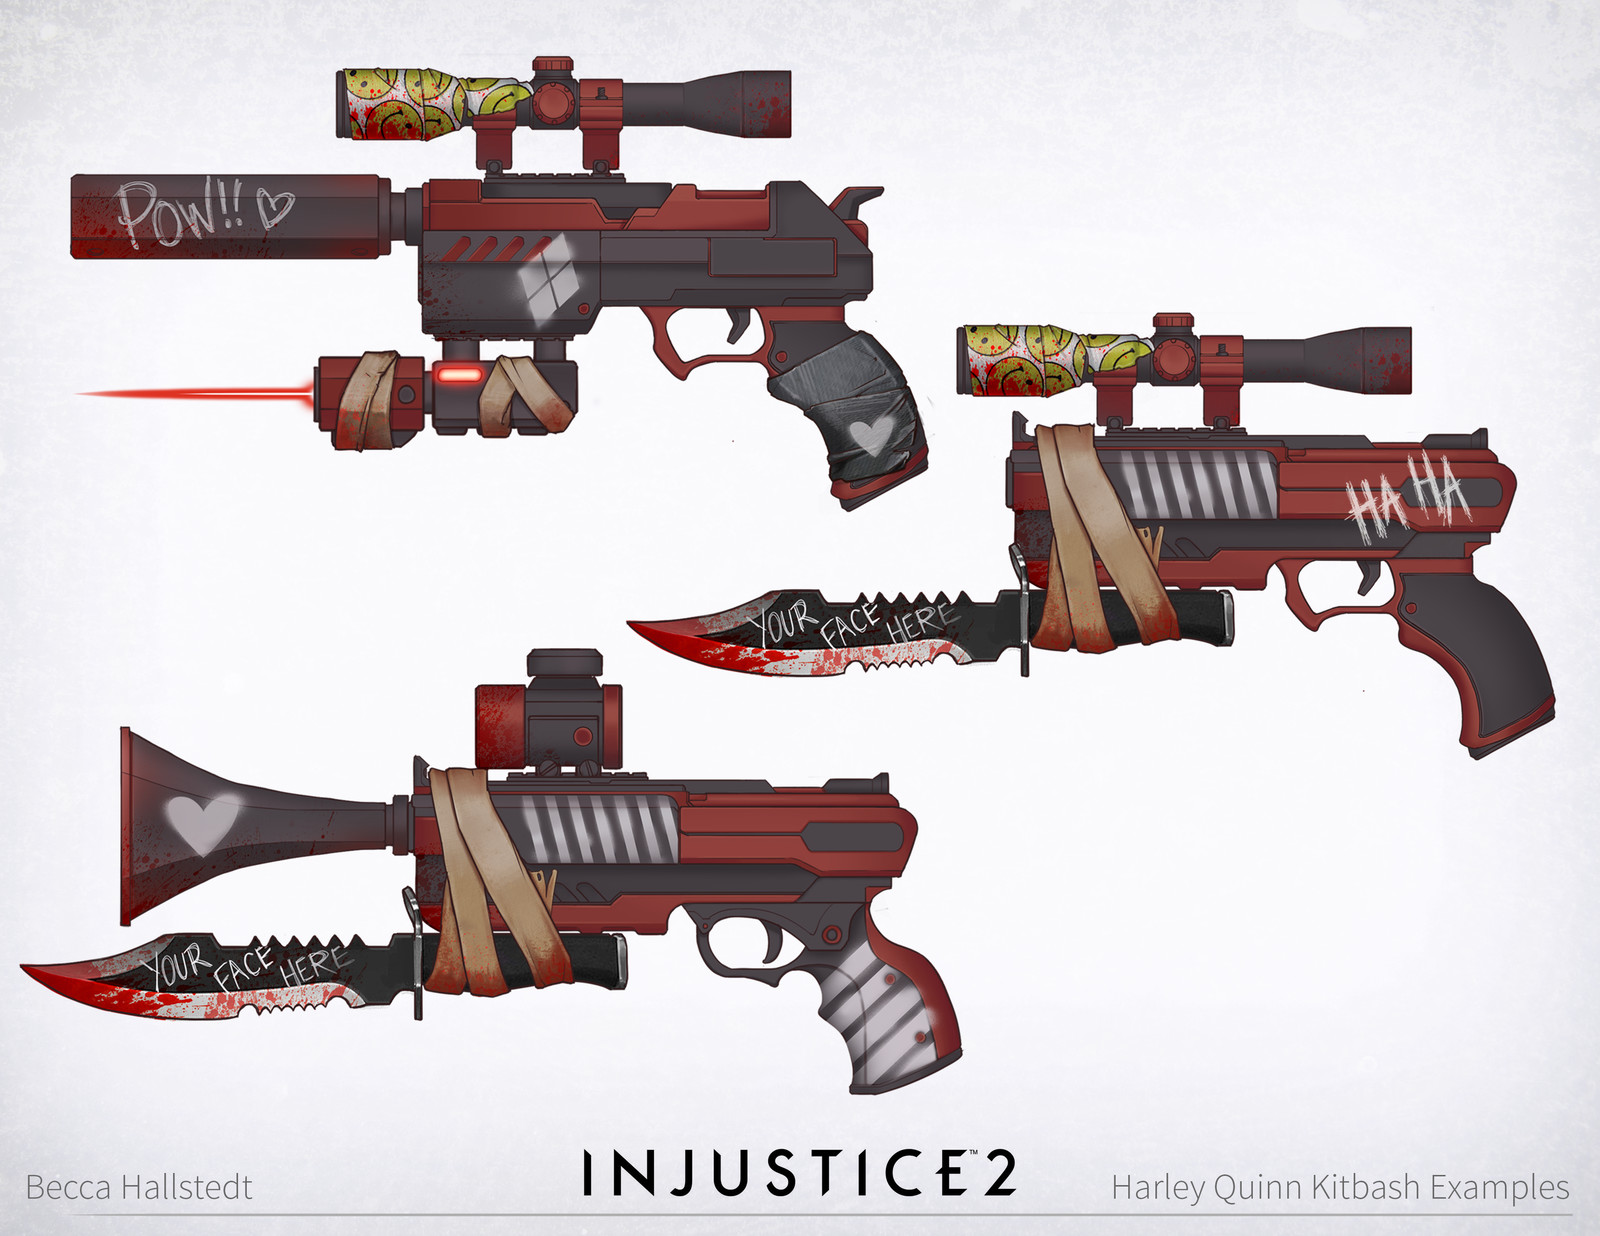 Injustice 2: Green Lantern/Harley Quinn/NPC guns